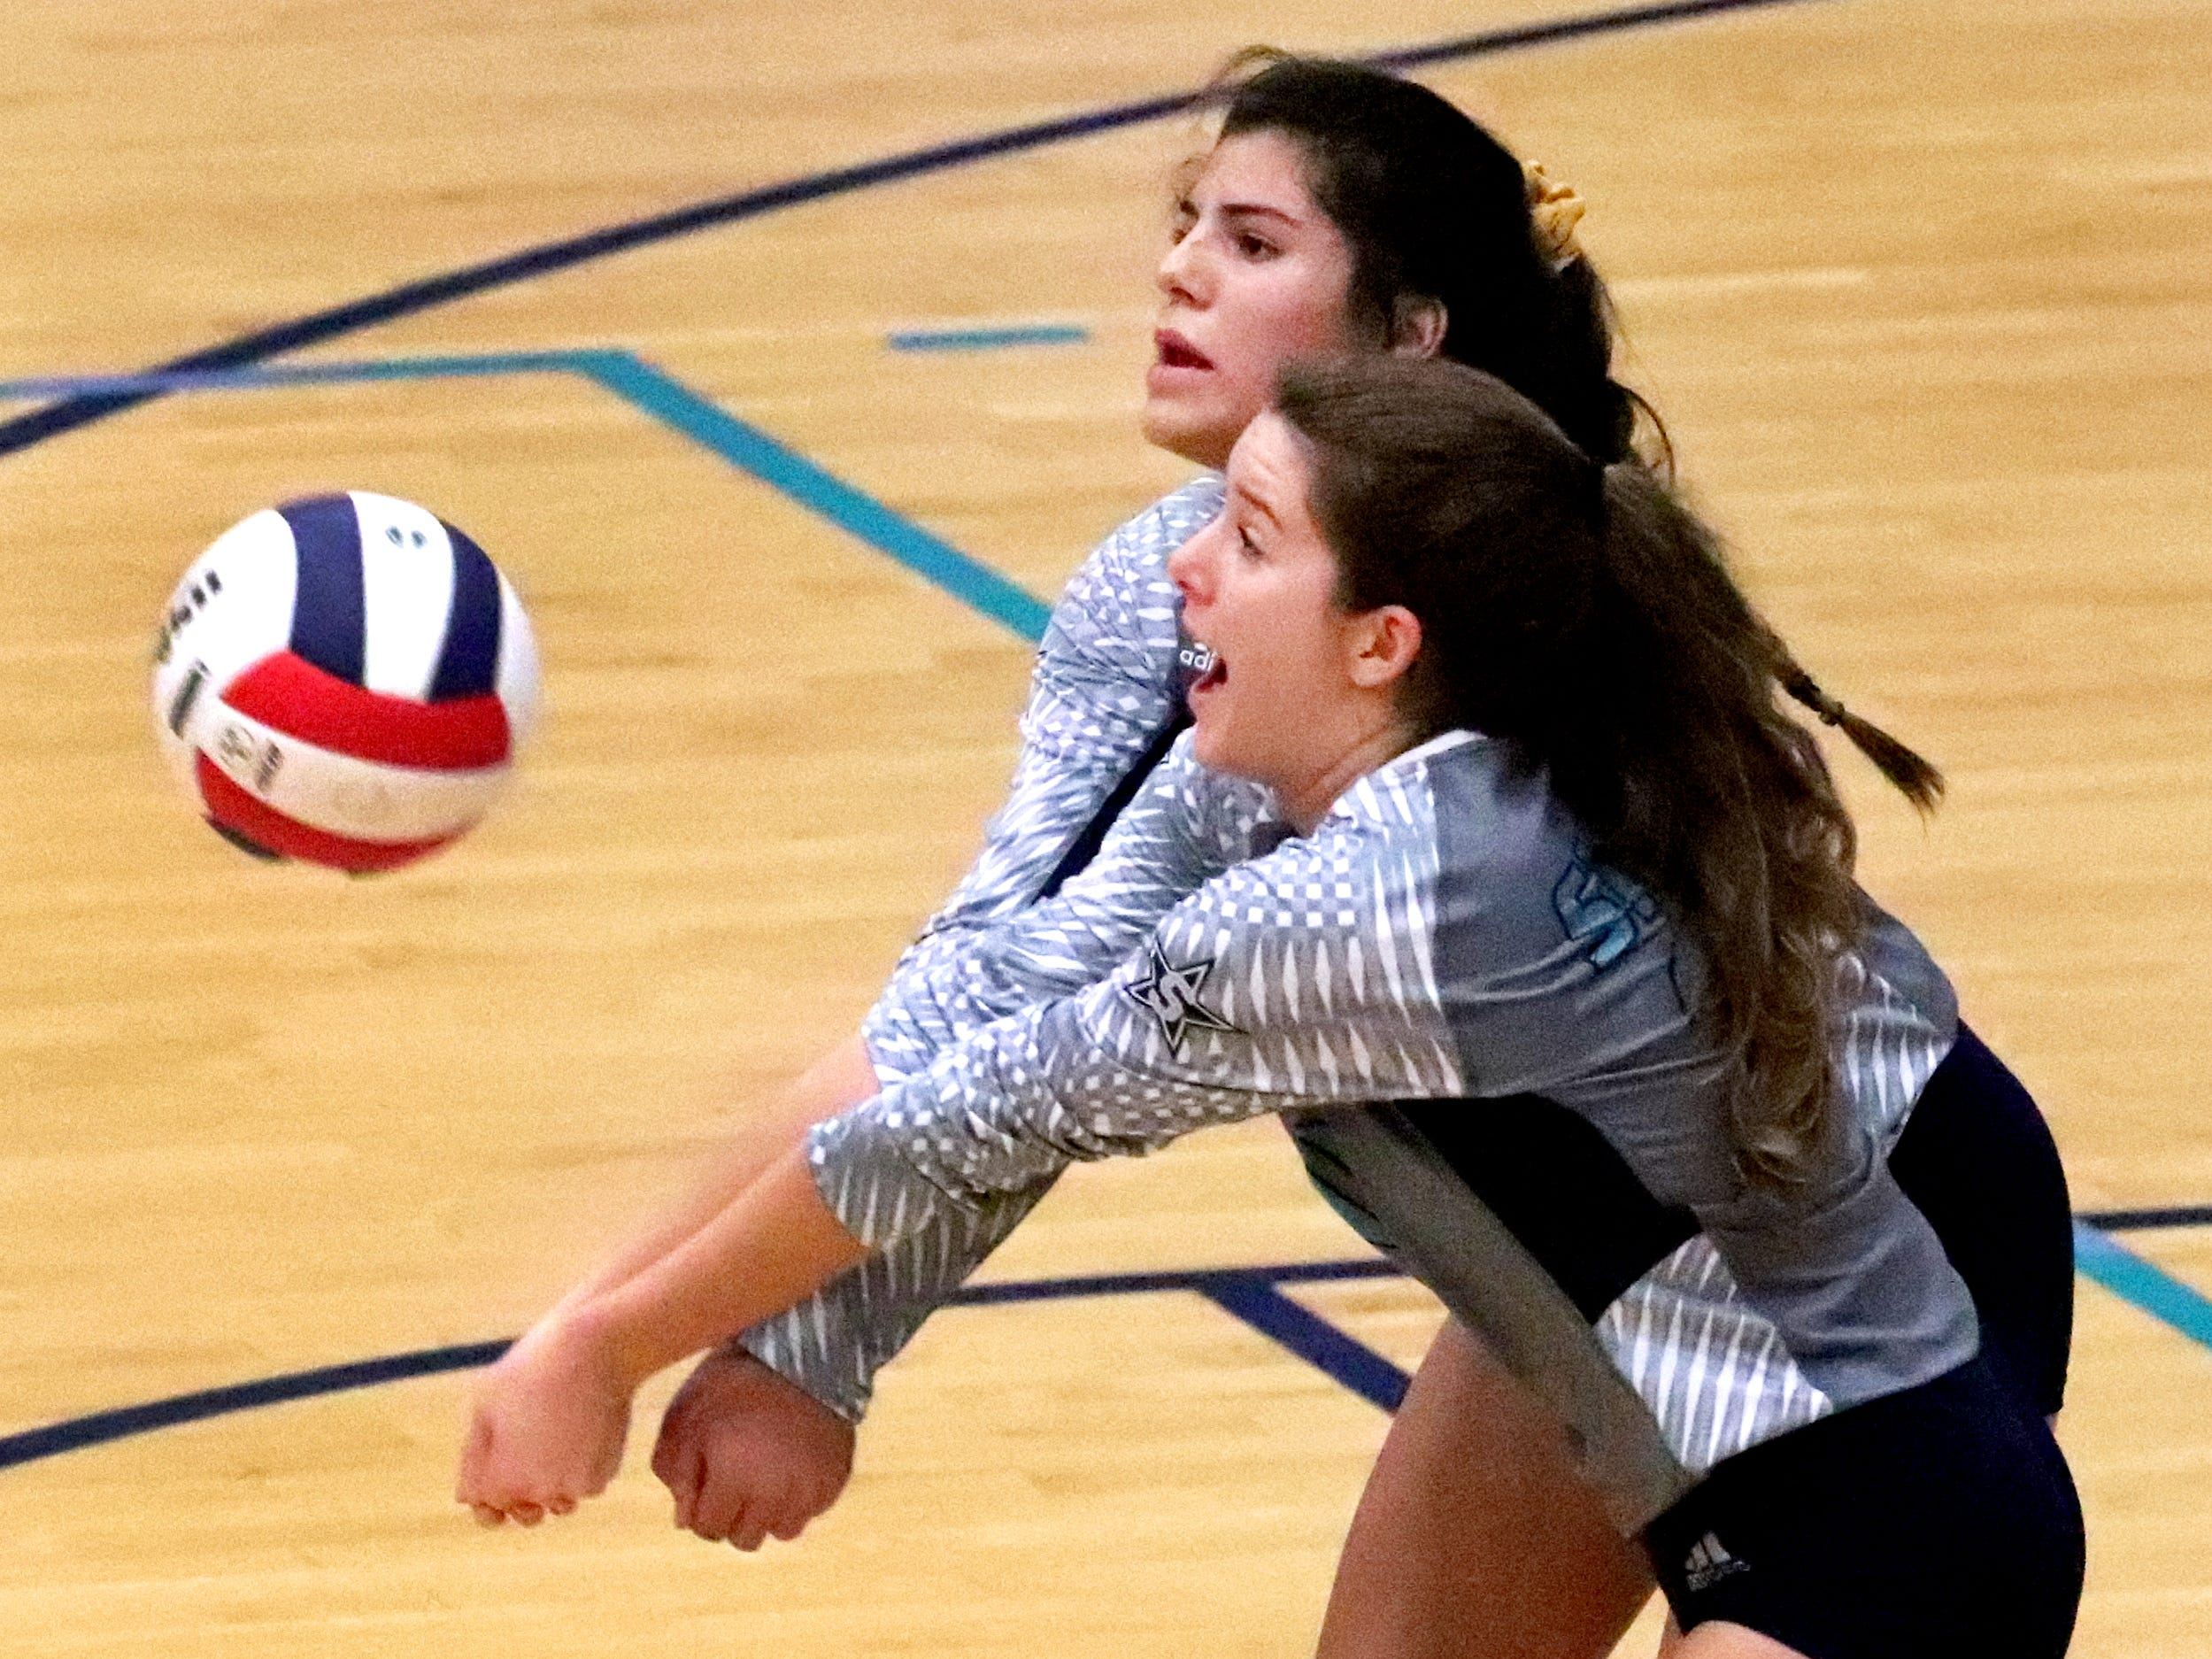 Siegel's June Padilla (6) and Zoe Delk (20) both go to bump the ball during the Class AAA sectional against Cleveland Thursday, Oct. 11, 2018. Siegel beat Cleveland to advance to the State Championship tournament.